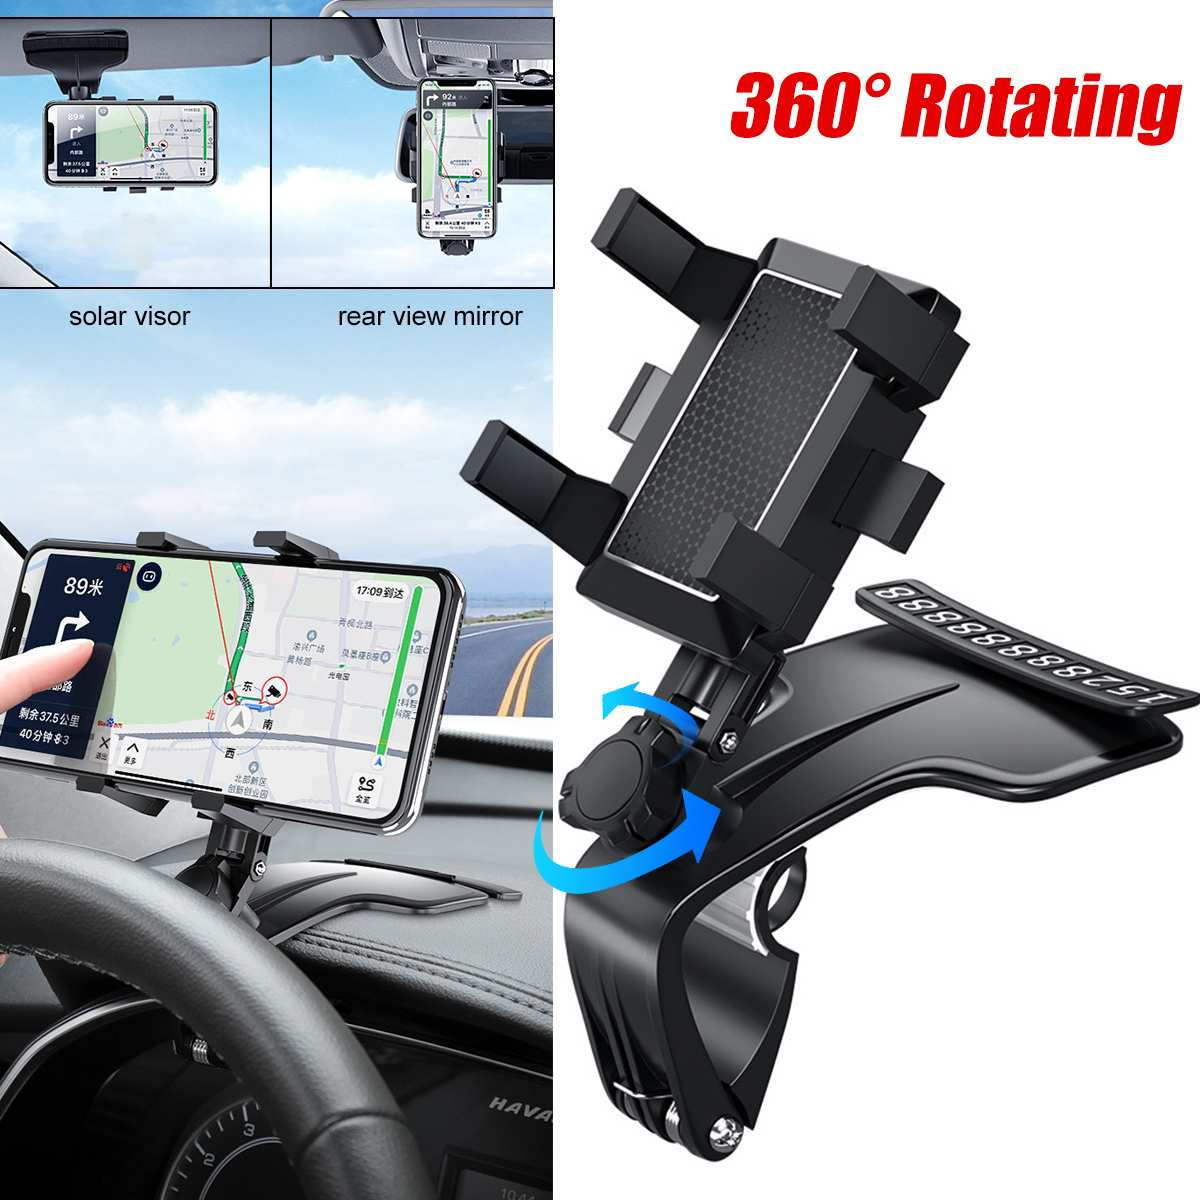 Upgraded Dashboard Car Phone Holder 1200 Degree Mobile Phone Stands Rearview Mirror Sun Visor In Car